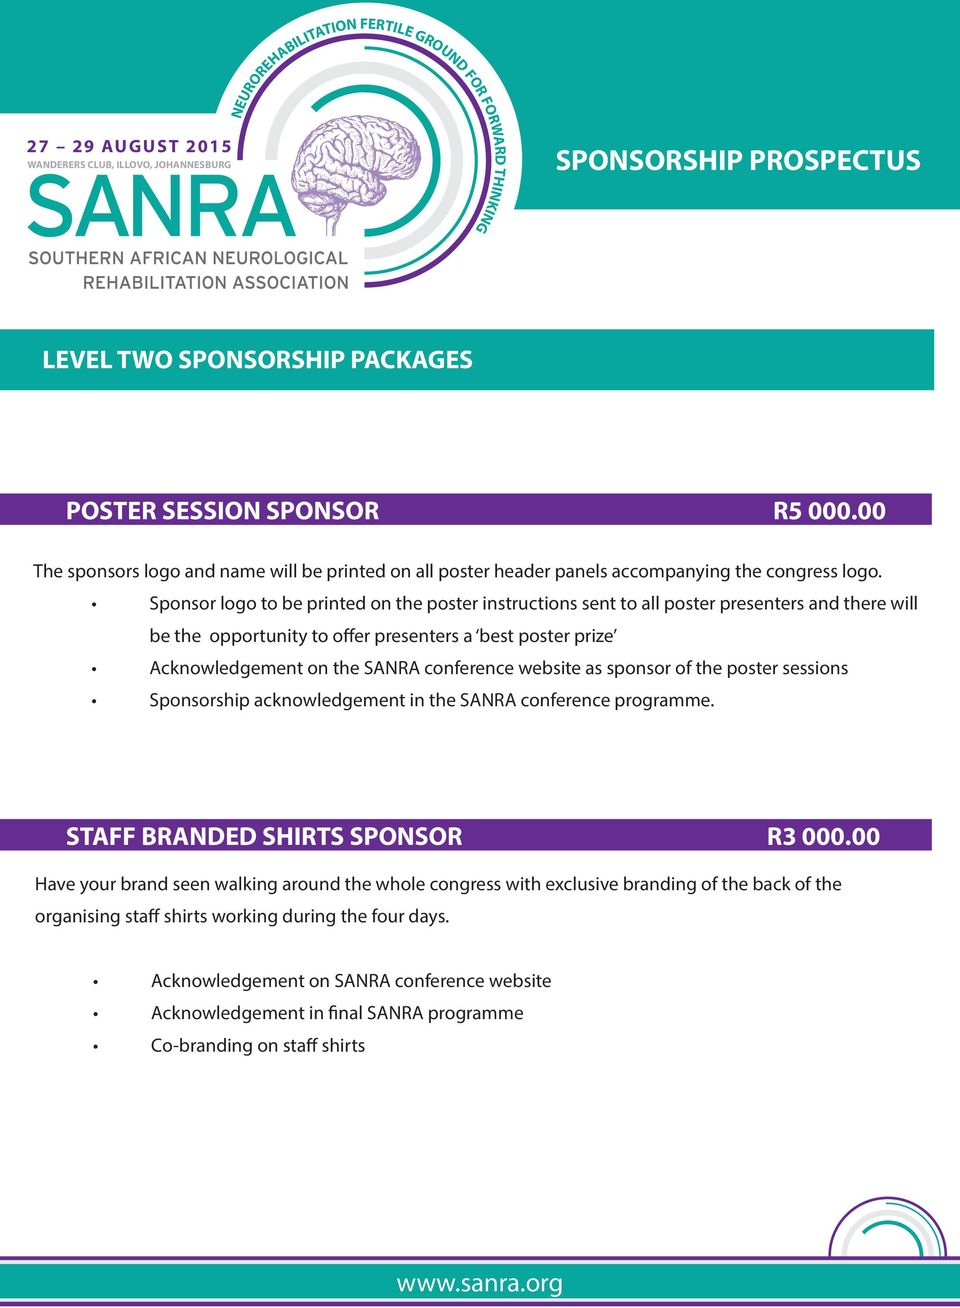 conference website as sponsor of the poster sessions Sponsorship acknowledgement in the SANRA conference programme. STAFF BRANDED SHIRTS SPONSOR R3 000.